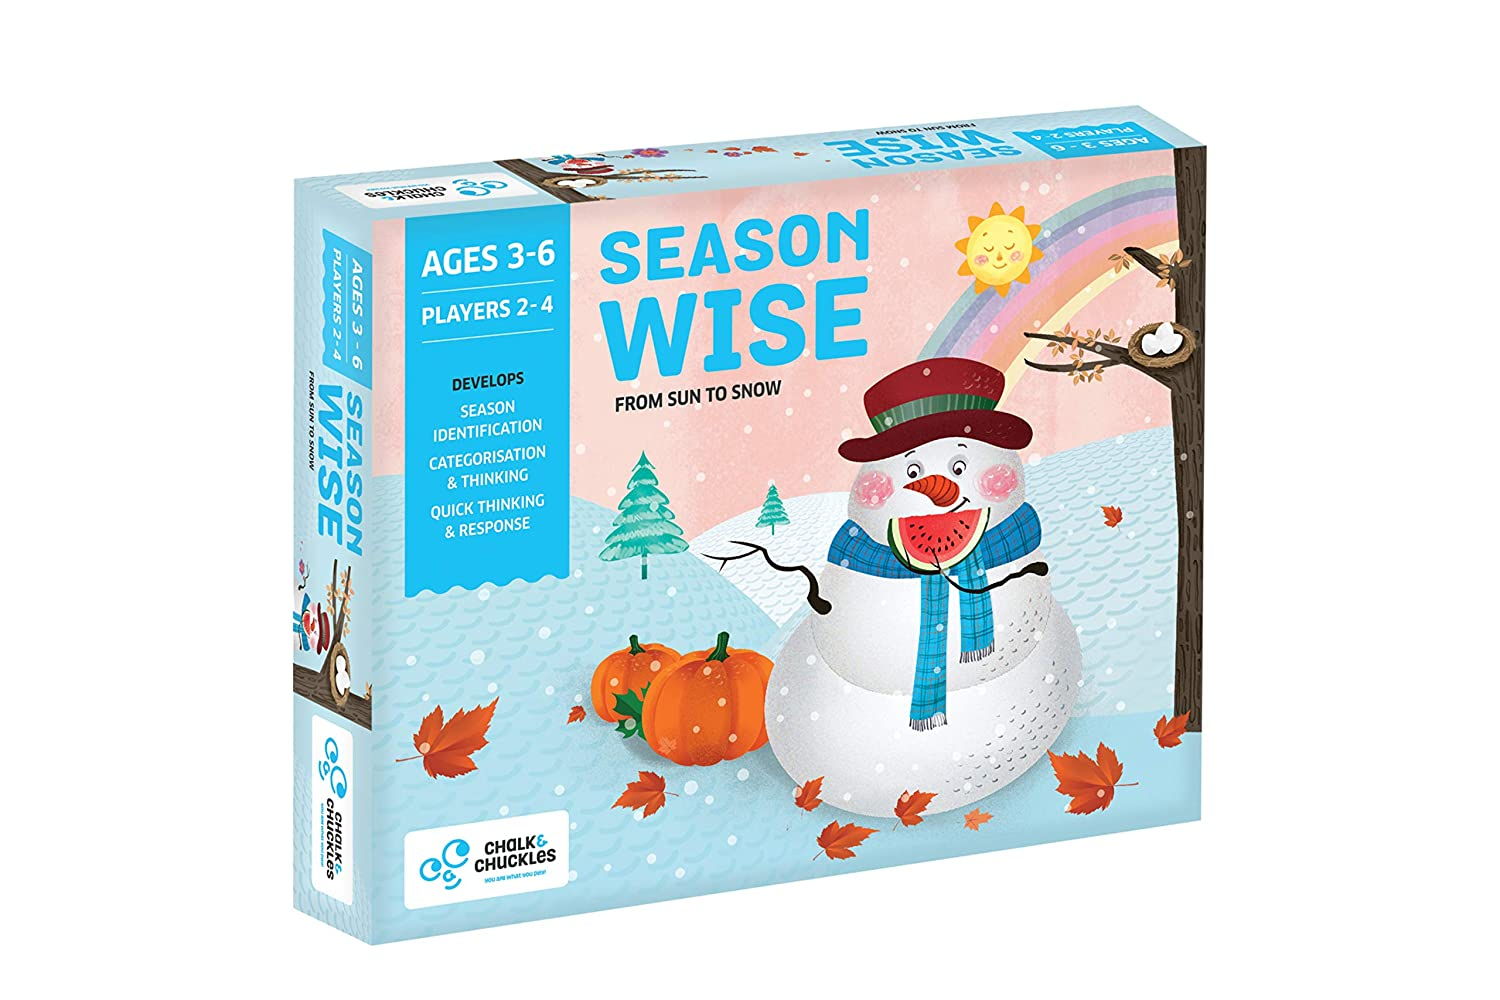 American Educational Products CC-028 Season Wise Activity Set Chalk and Chuckles